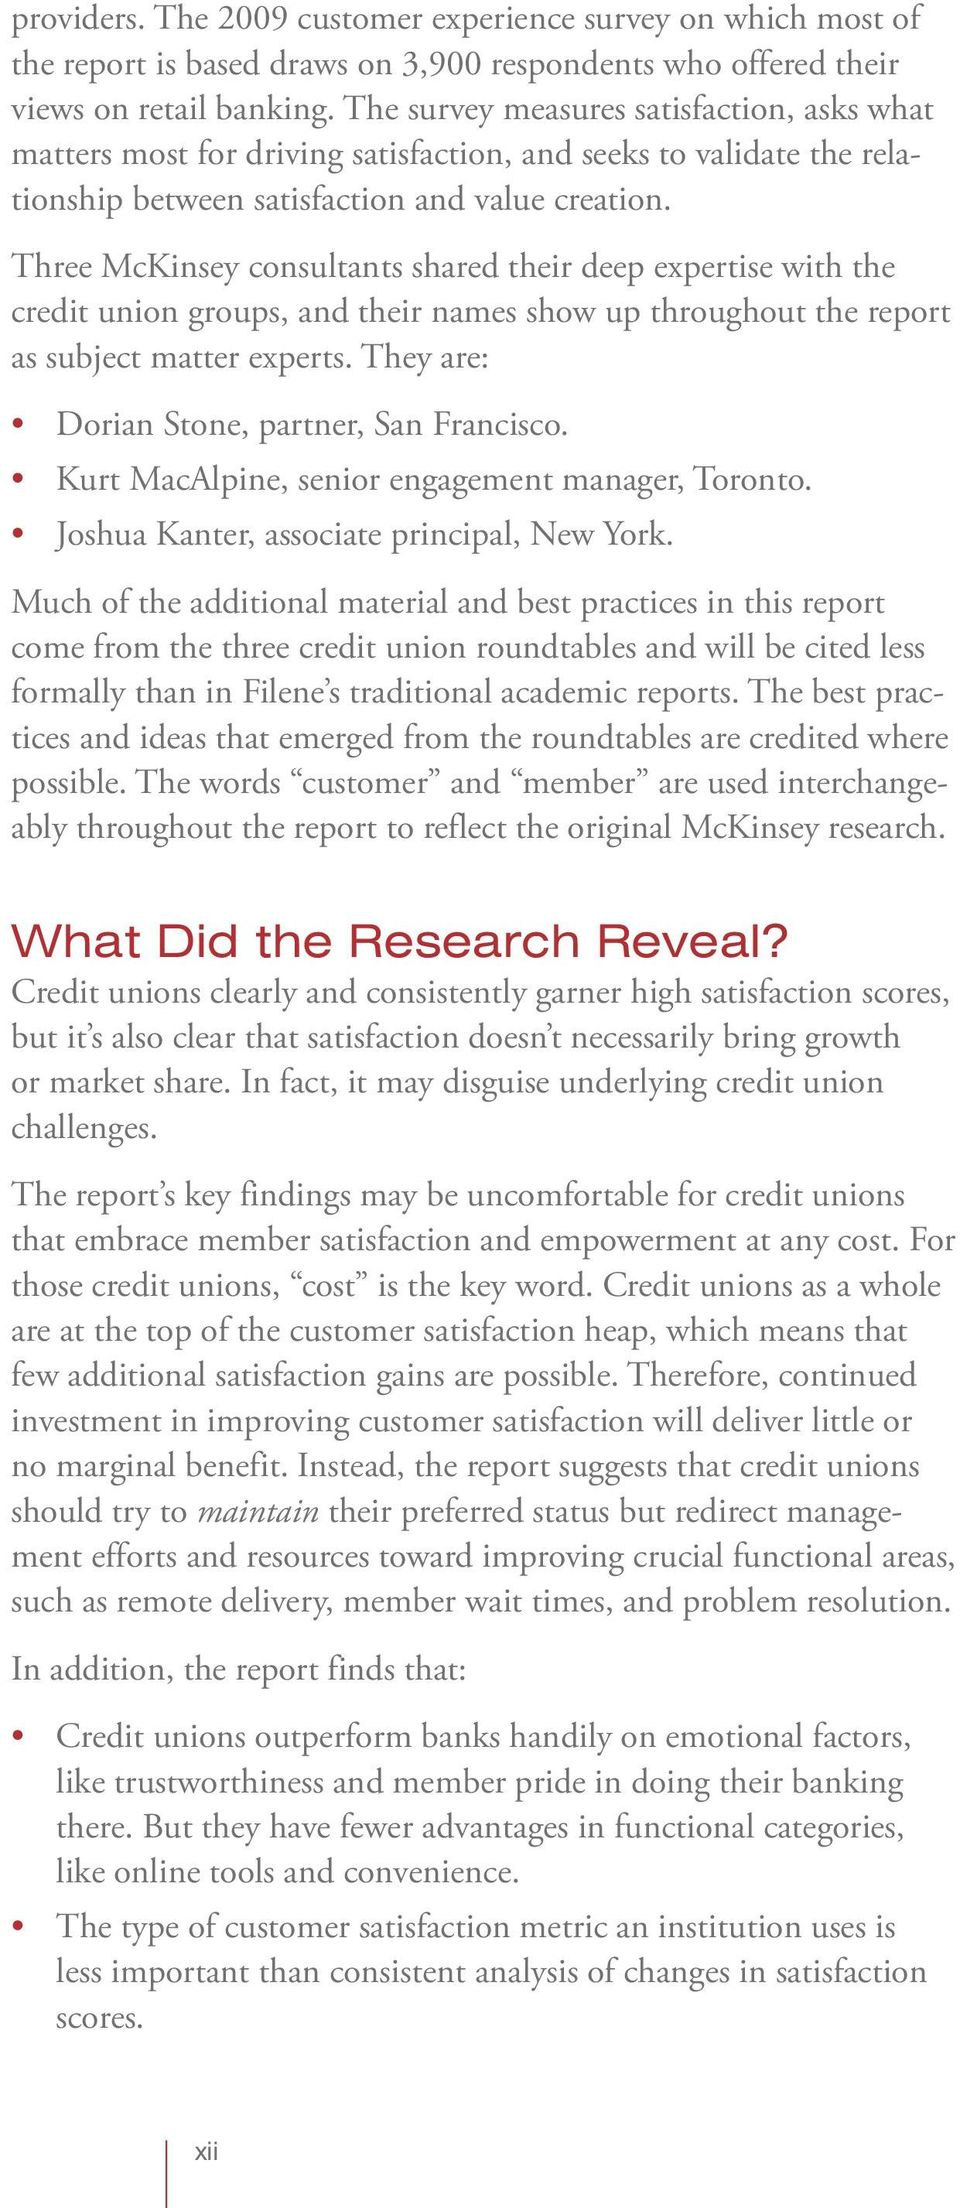 Three McKinsey consultants shared their deep expertise with the credit union groups, and their names show up throughout the report as subject matter experts.